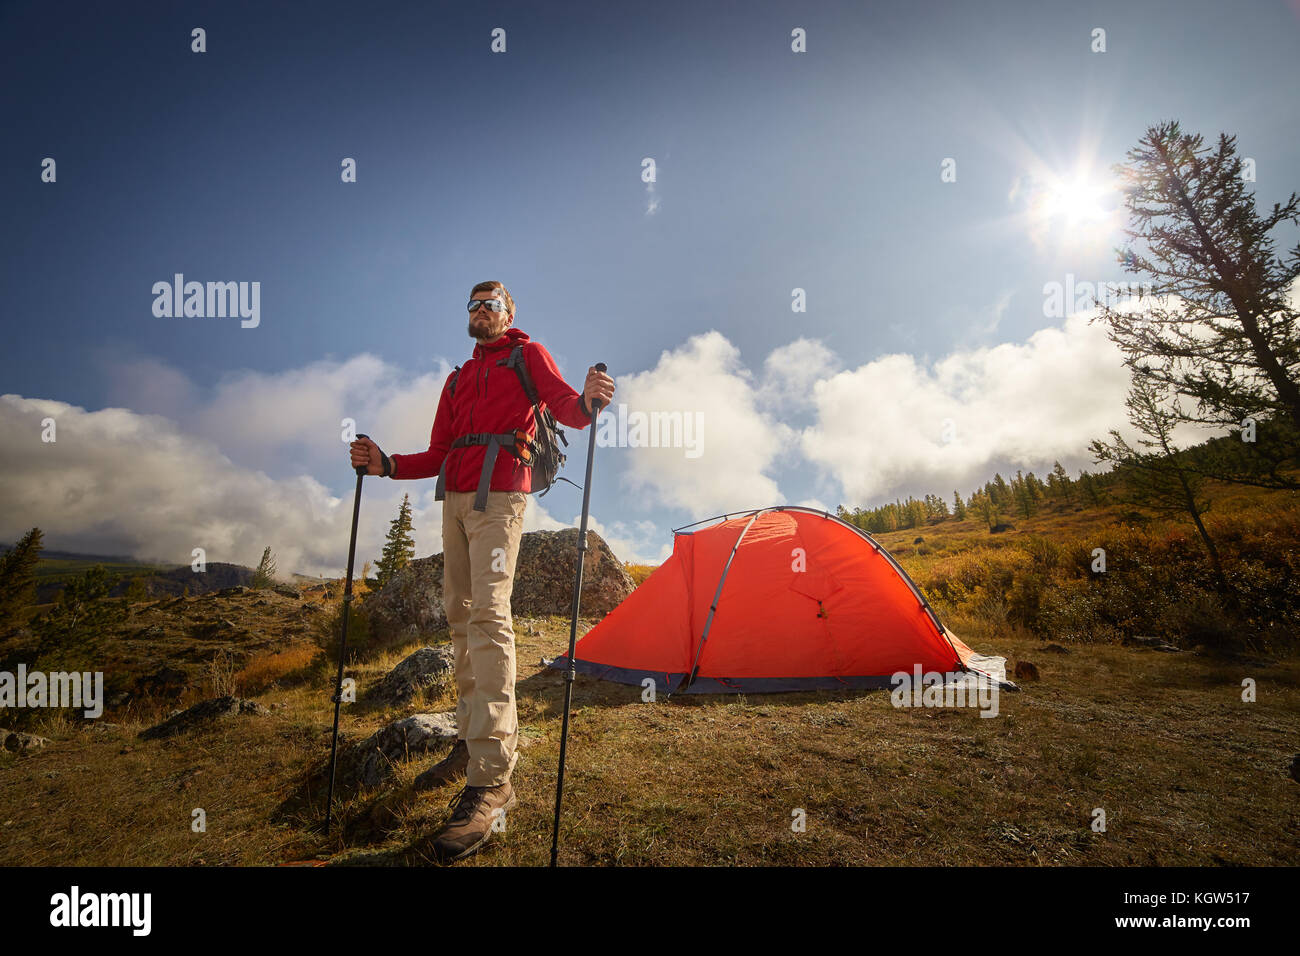 Backpacker with poles in hand. - Stock Image